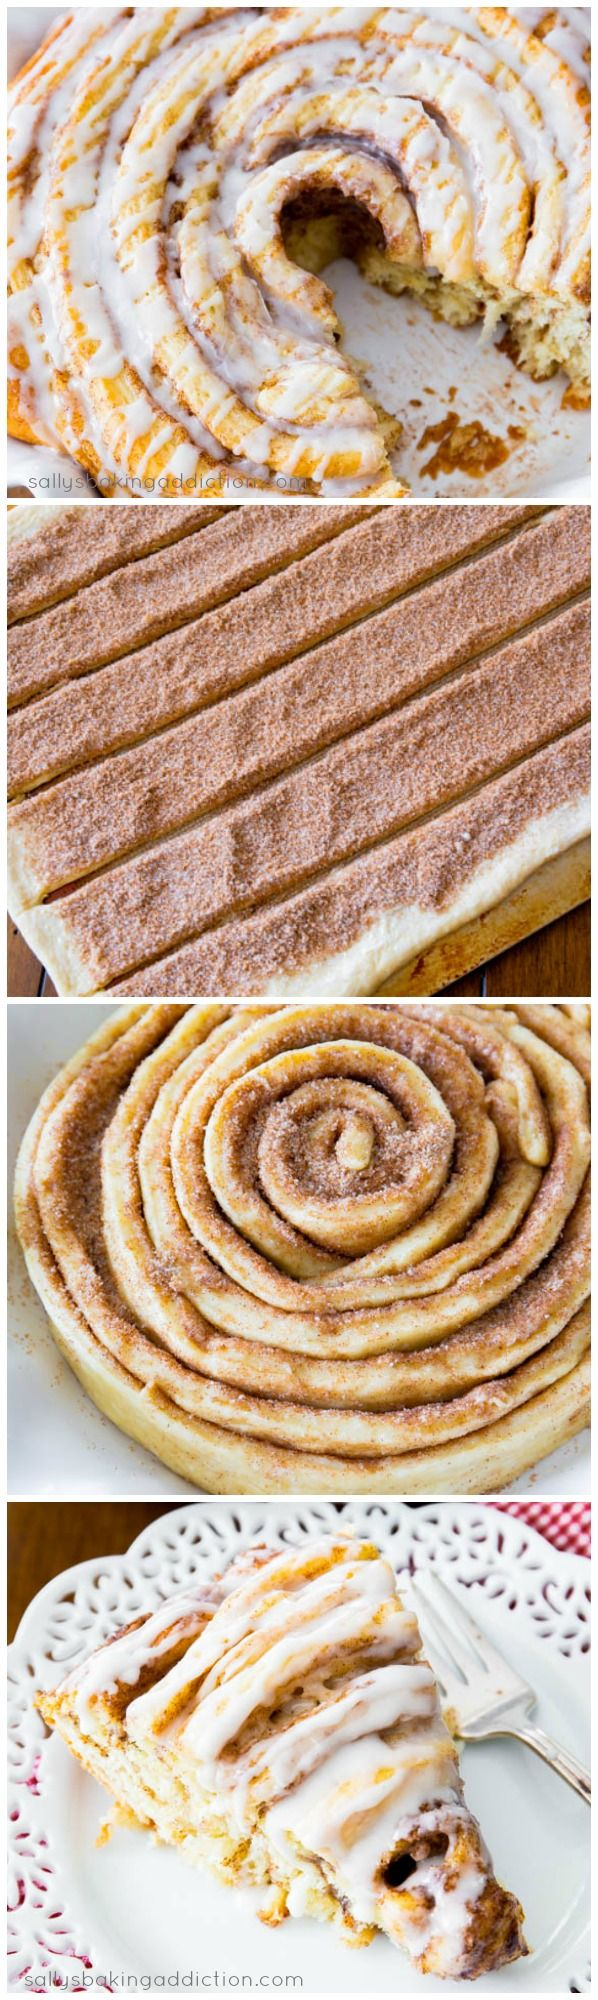 giant cinnamon roll cake, via sally's baking addiction